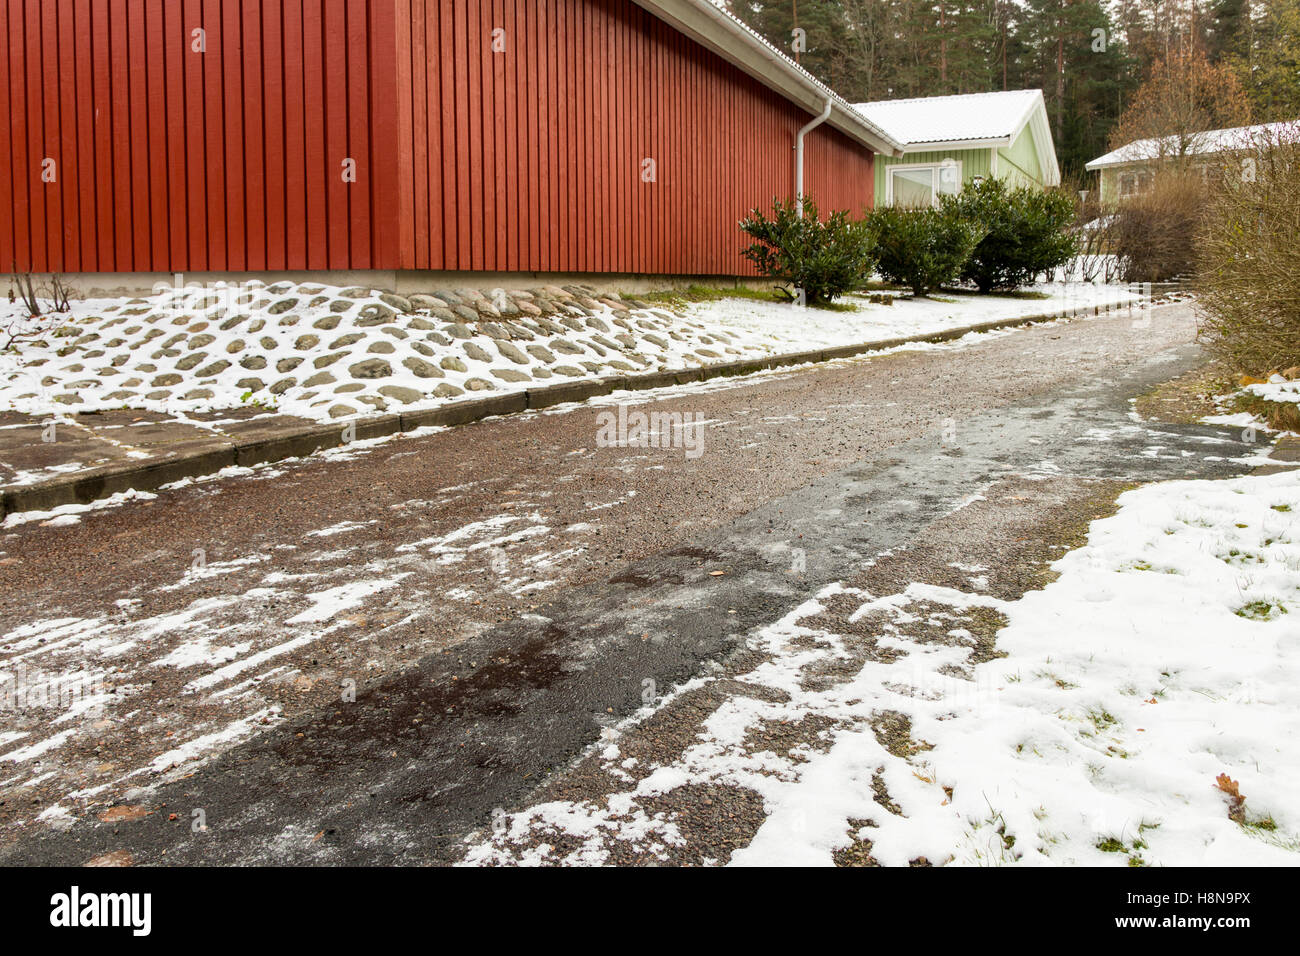 Icy and slippery pedestrian walkway /side walk during winter  Model Release: No.  Property Release: No. - Stock Image